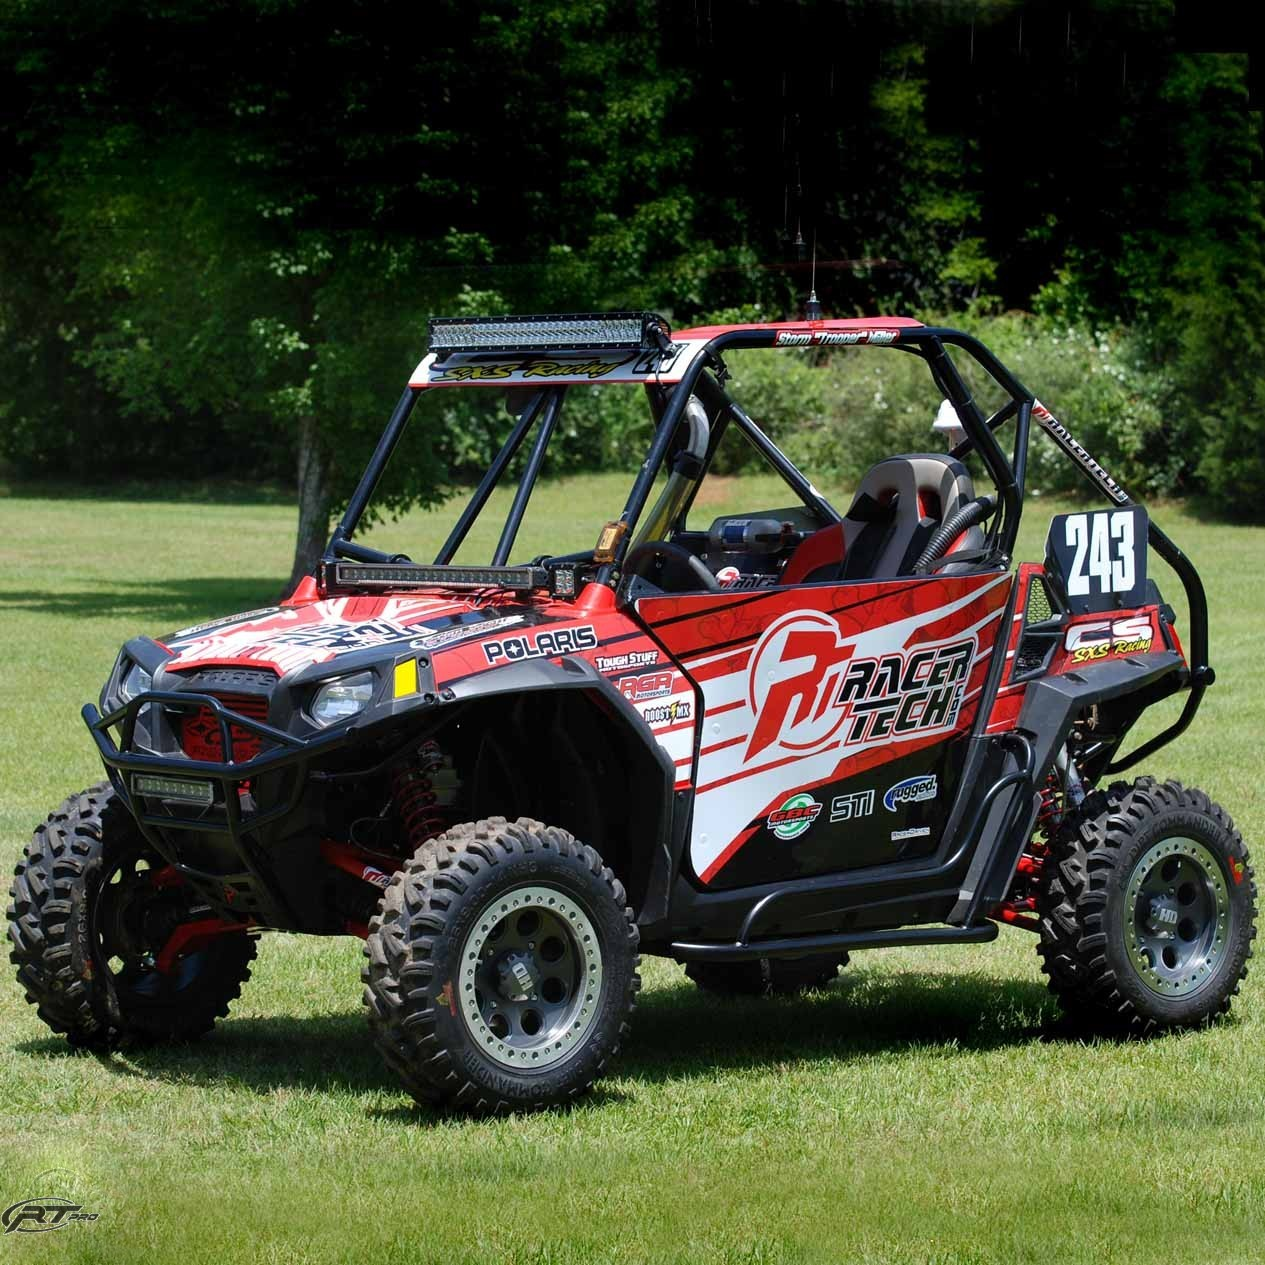 Rt Pro Rzr 570 800 900xp Rc2 Roll Cage